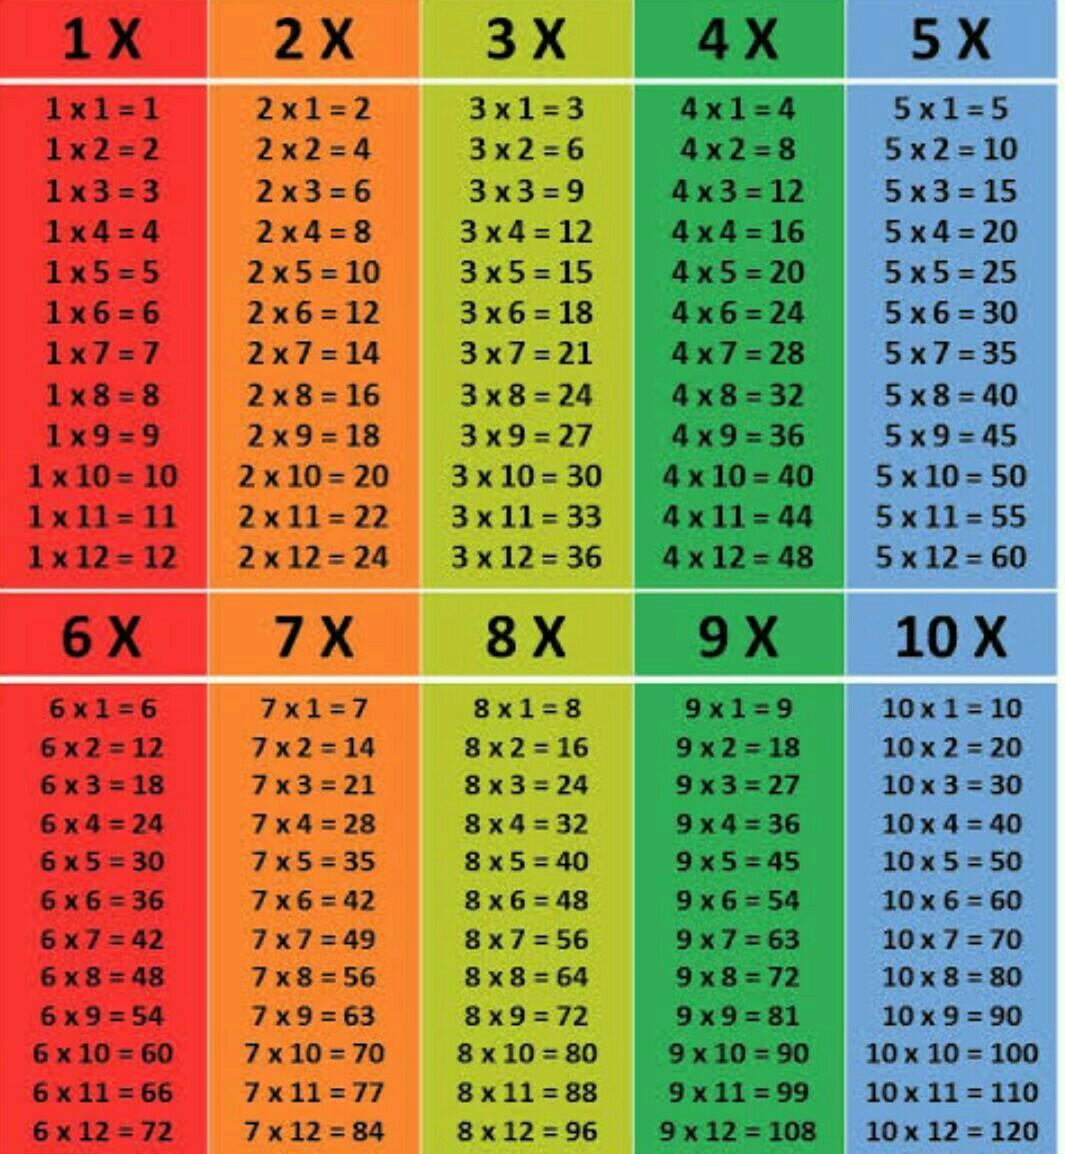 Multiplication Table From 2 To 10